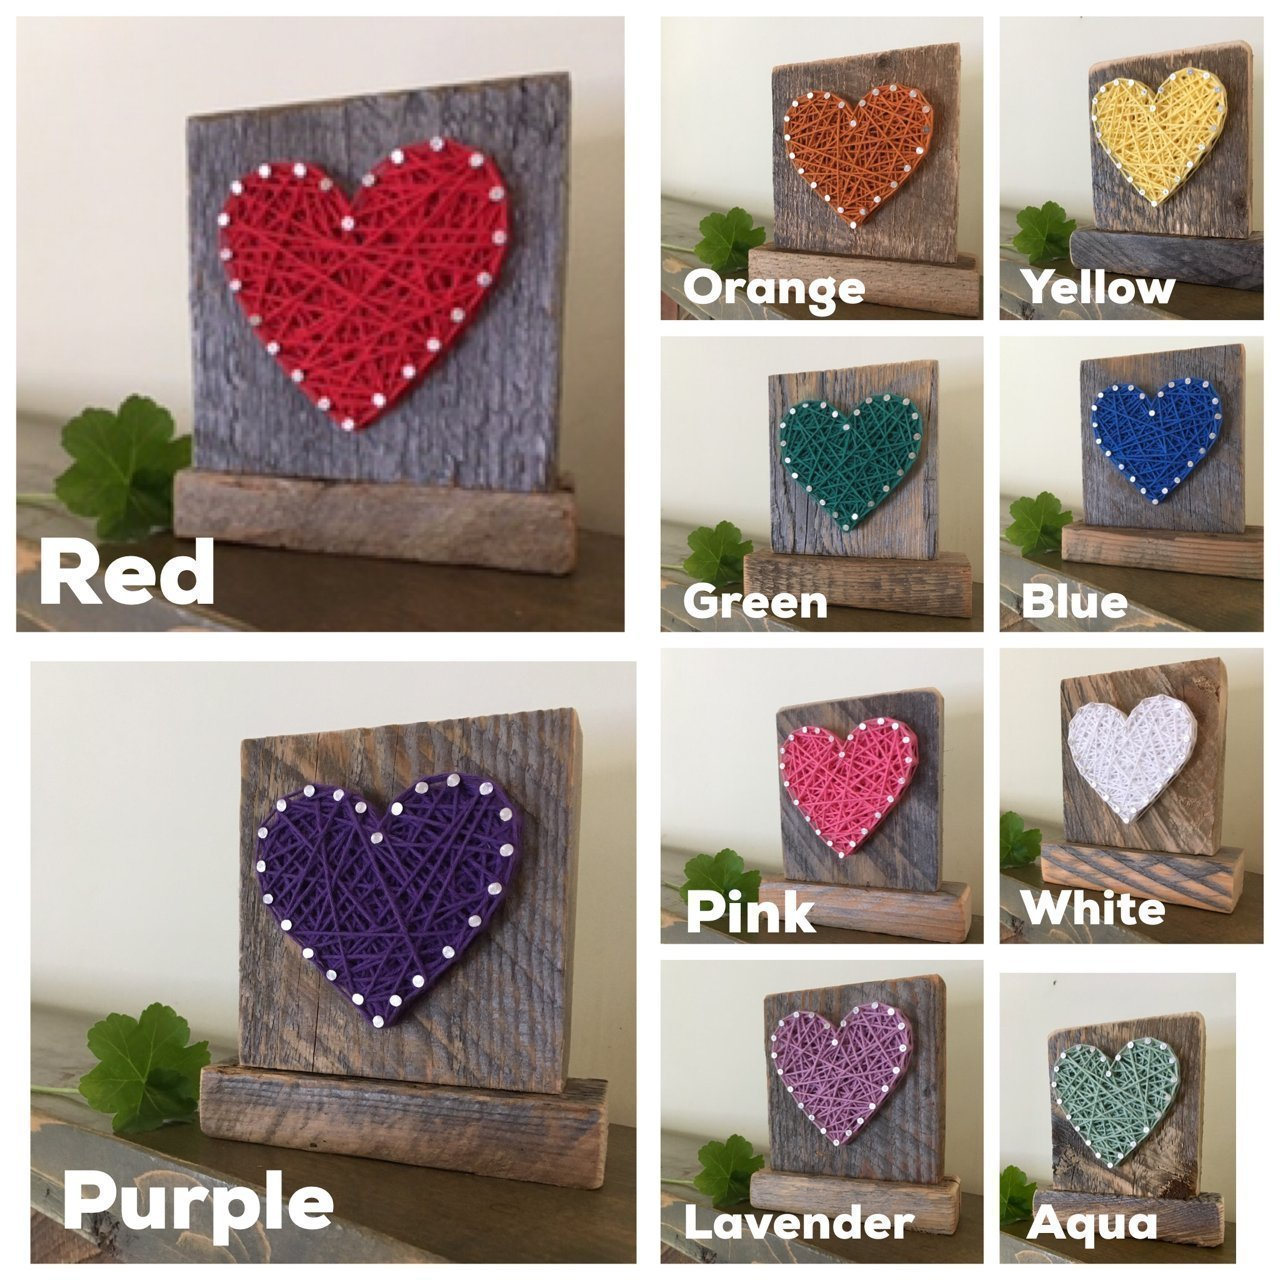 Sweet & small freestanding wooden red string art heart block sign. Perfect for home accents, Wedding favors, Anniversaries, housewarming, teacher, congratulations & just because. by Nail it Art by Nail it Art (Image #4)